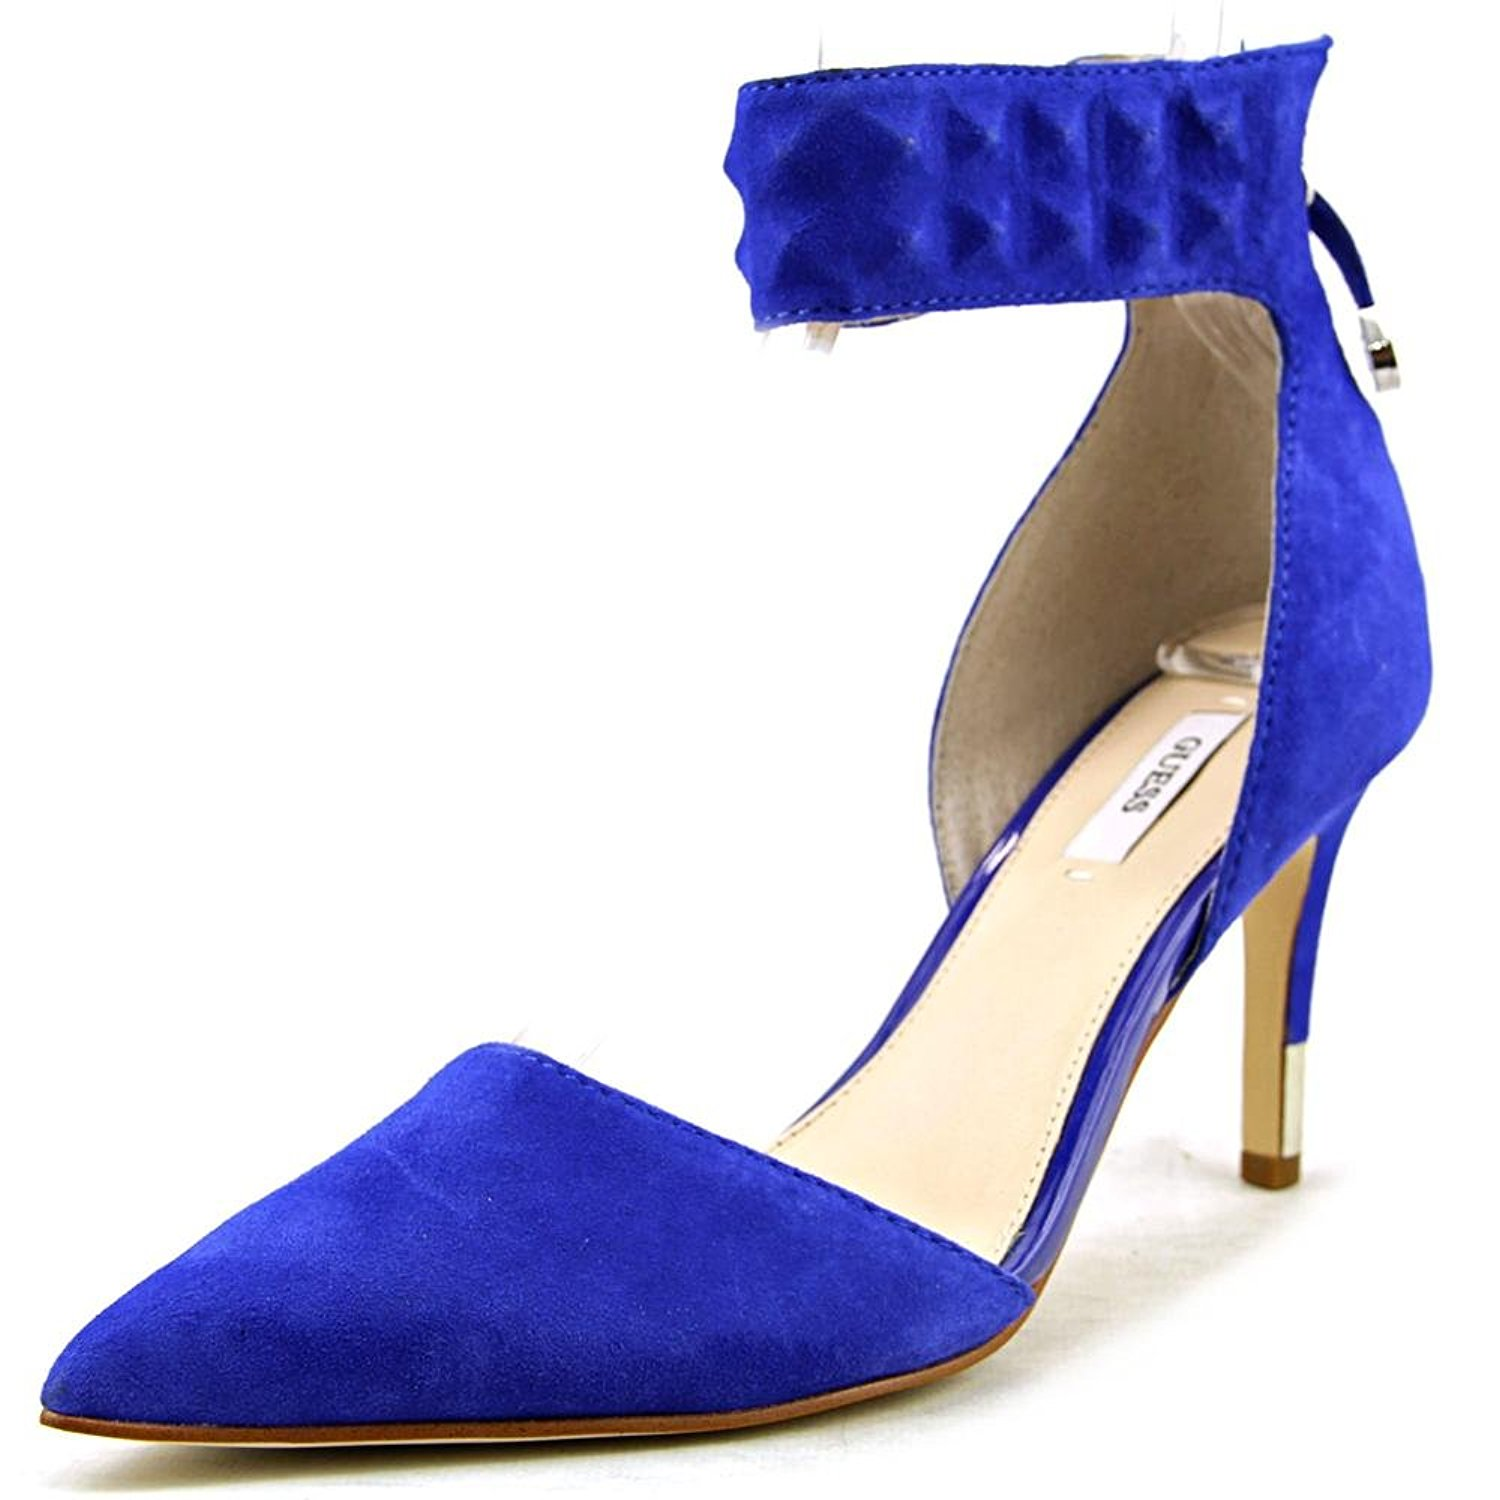 GUESS Womens Evanne Leather Pointed Toe Ankle Strap Dorsay Blue Size 10.0 ksi